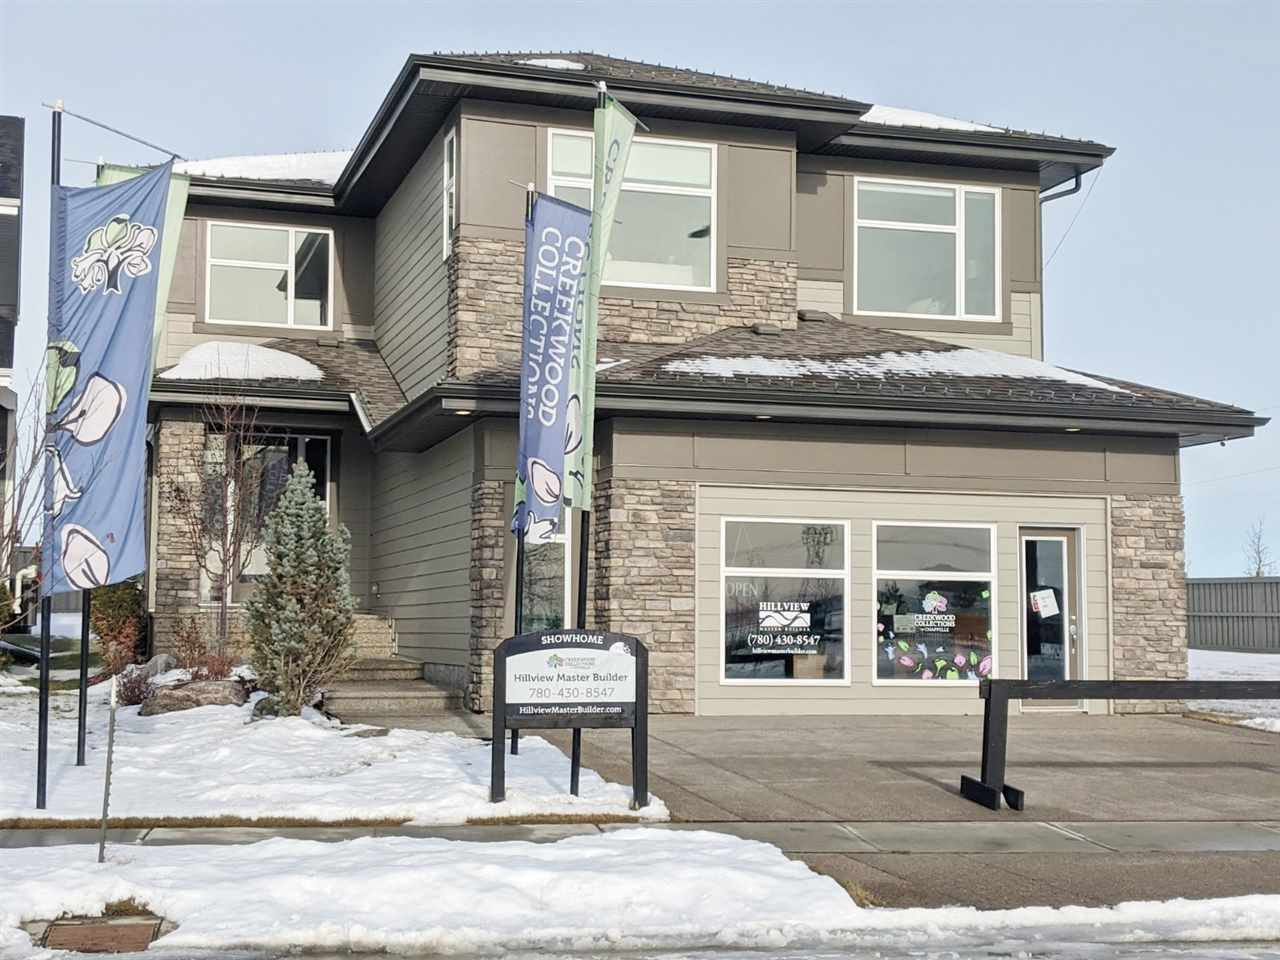 Main Photo: 4691 CHEGWIN Wynd in Edmonton: Zone 55 House for sale : MLS®# E4176749